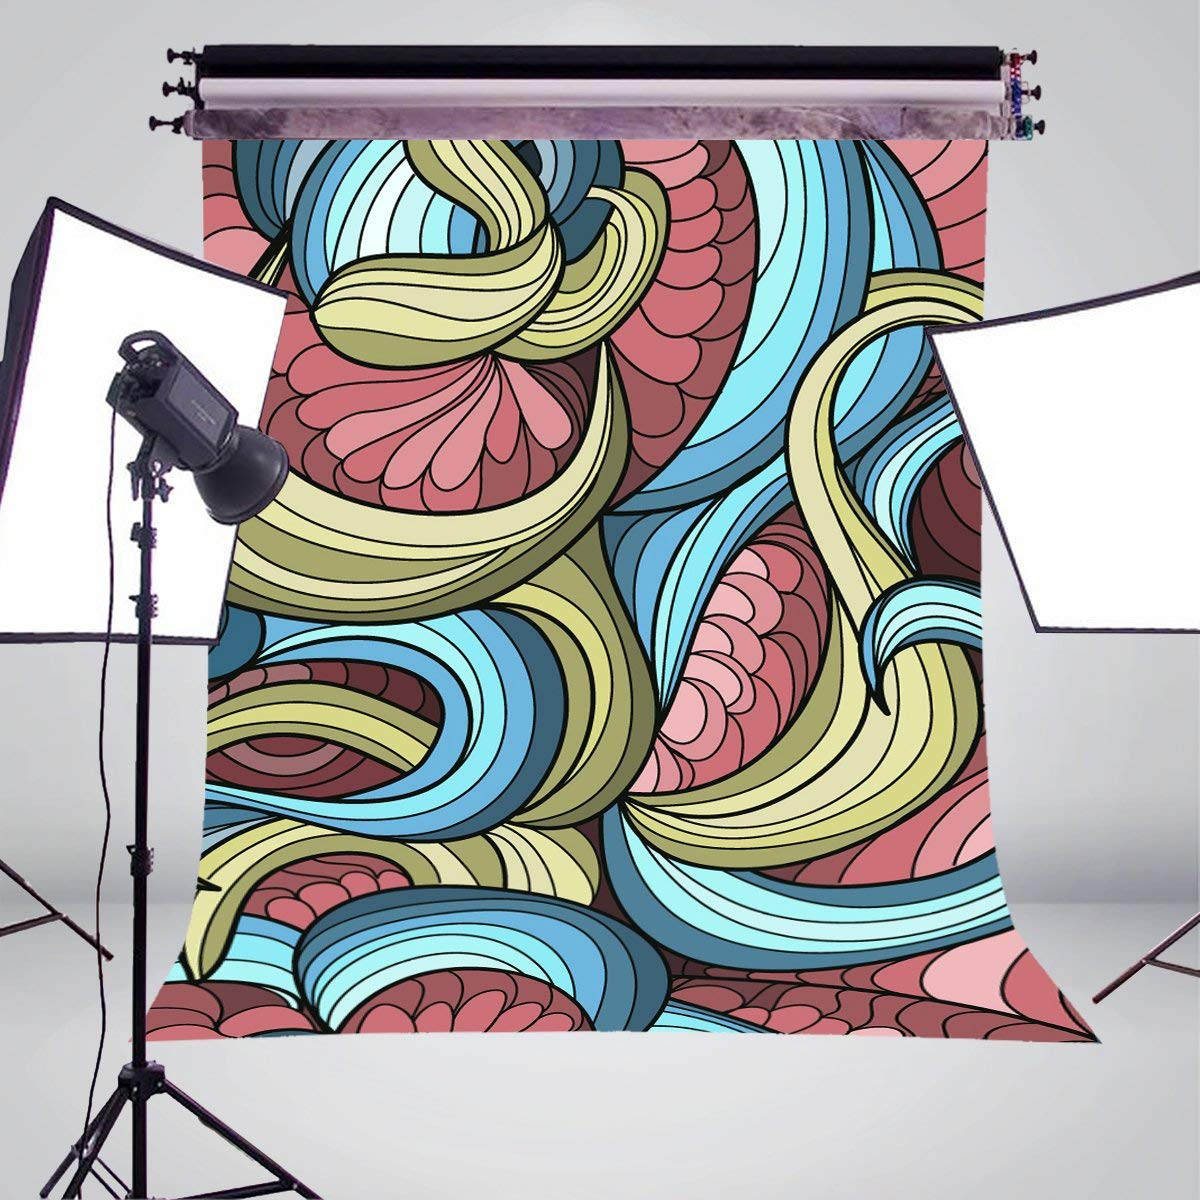 Image 3 - 3D Stereoscopic Photography Background Colorful Stripes Abstract Backdrop Photo Studio Backdrop Wall 5x7ft-in Photo Studio Accessories from Consumer Electronics